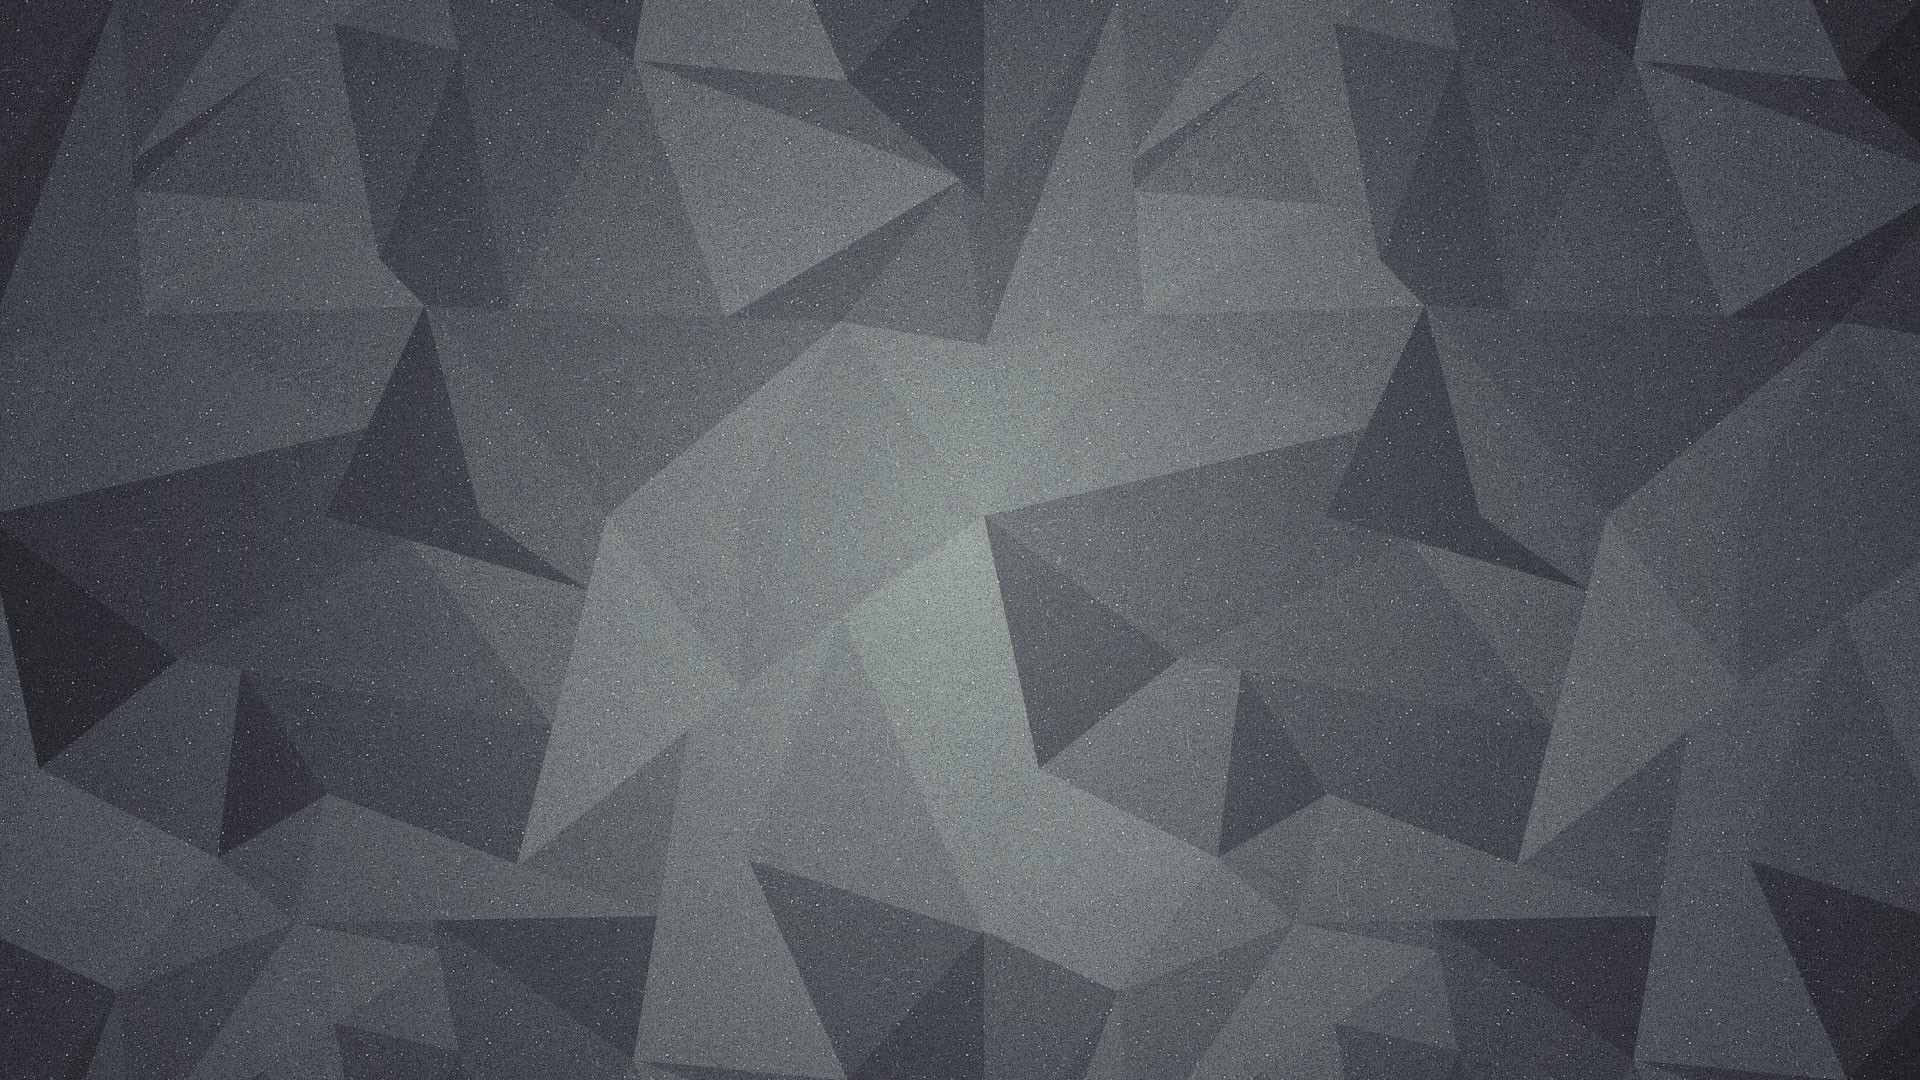 Grey hd wallpapers wallpapersafari for Black and grey wallpaper designs